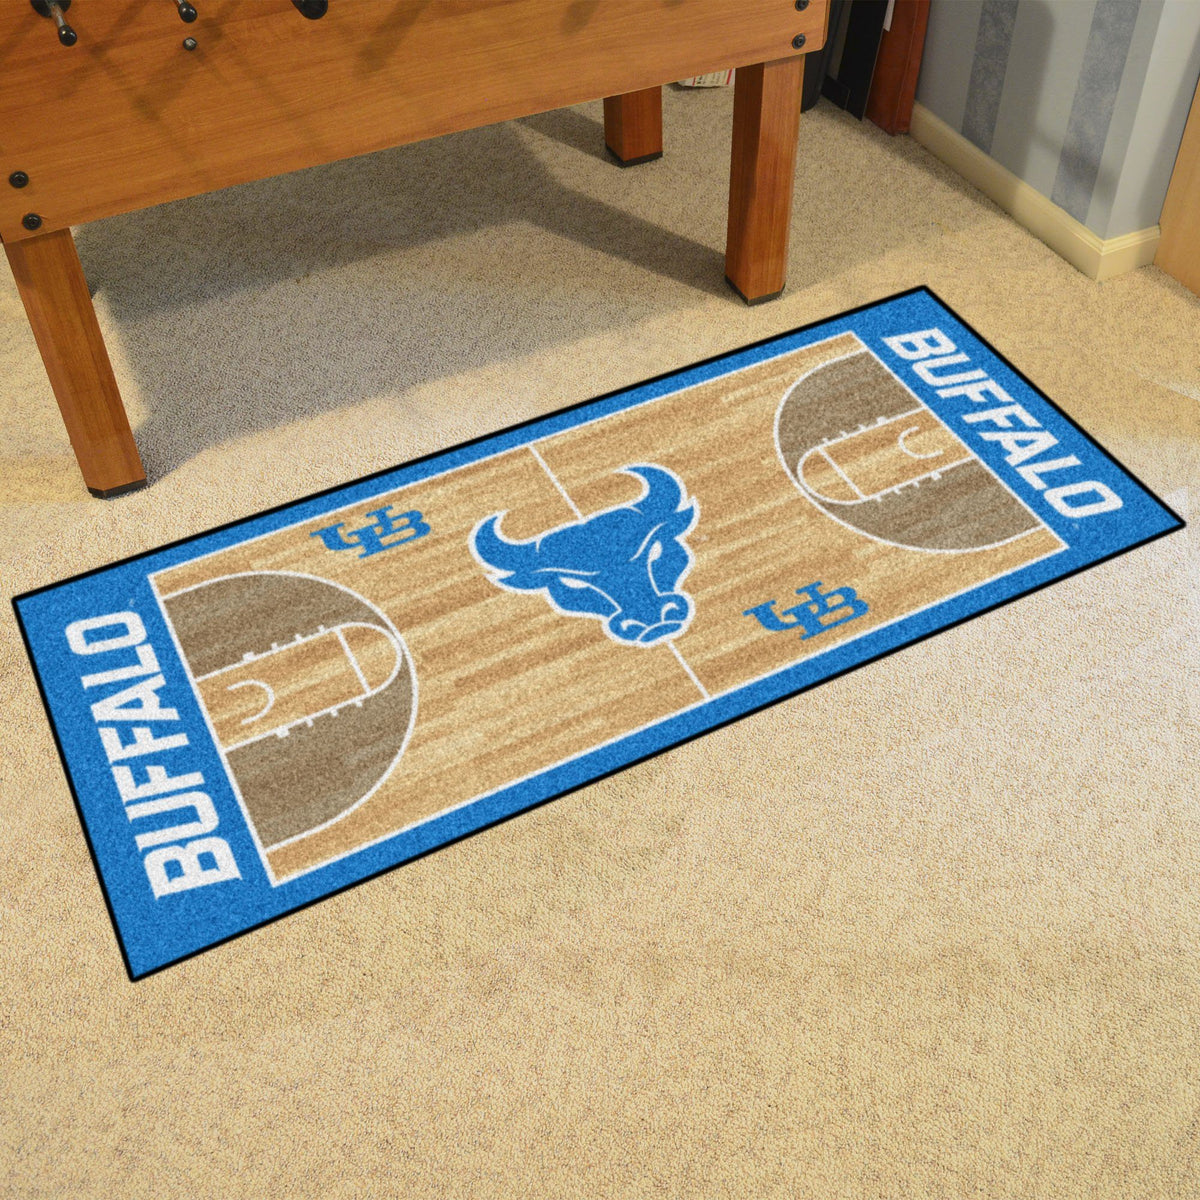 Collegiate - NCAA Basketball Runner Collegiate Mats, Rectangular Mats, NCAA Basketball Runner, Collegiate, Home Fan Mats Buffalo